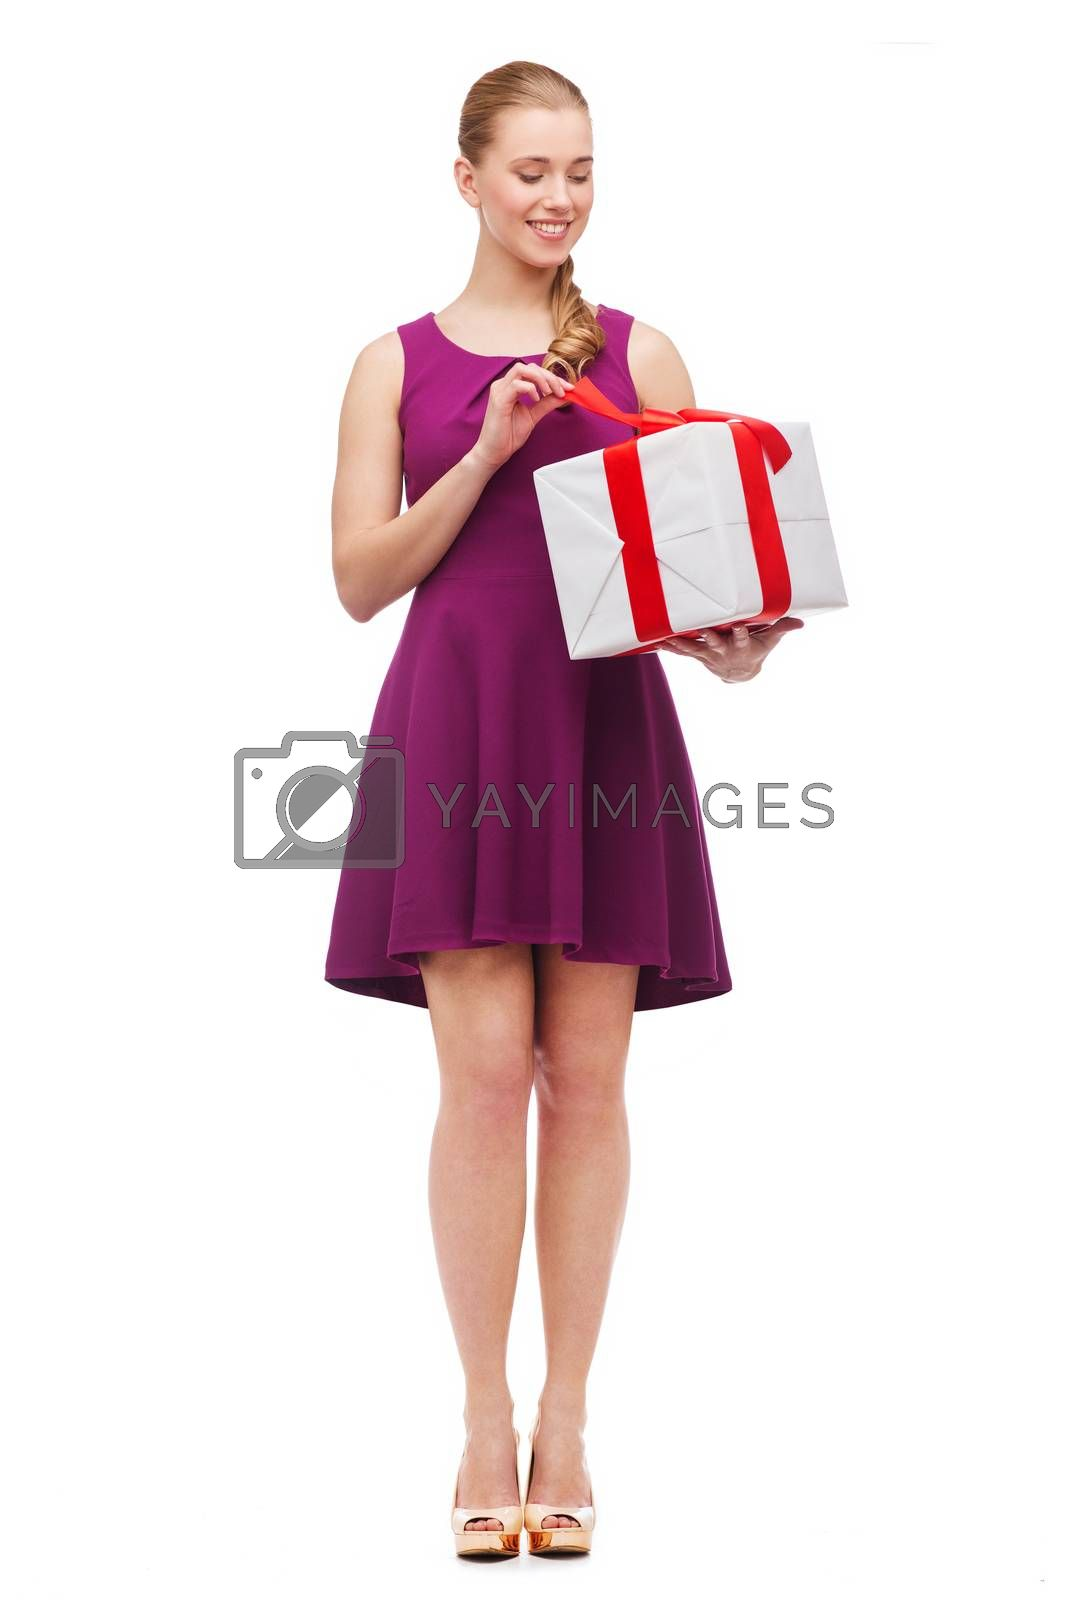 celebration and birthday concept - wondering smiling girl with present box